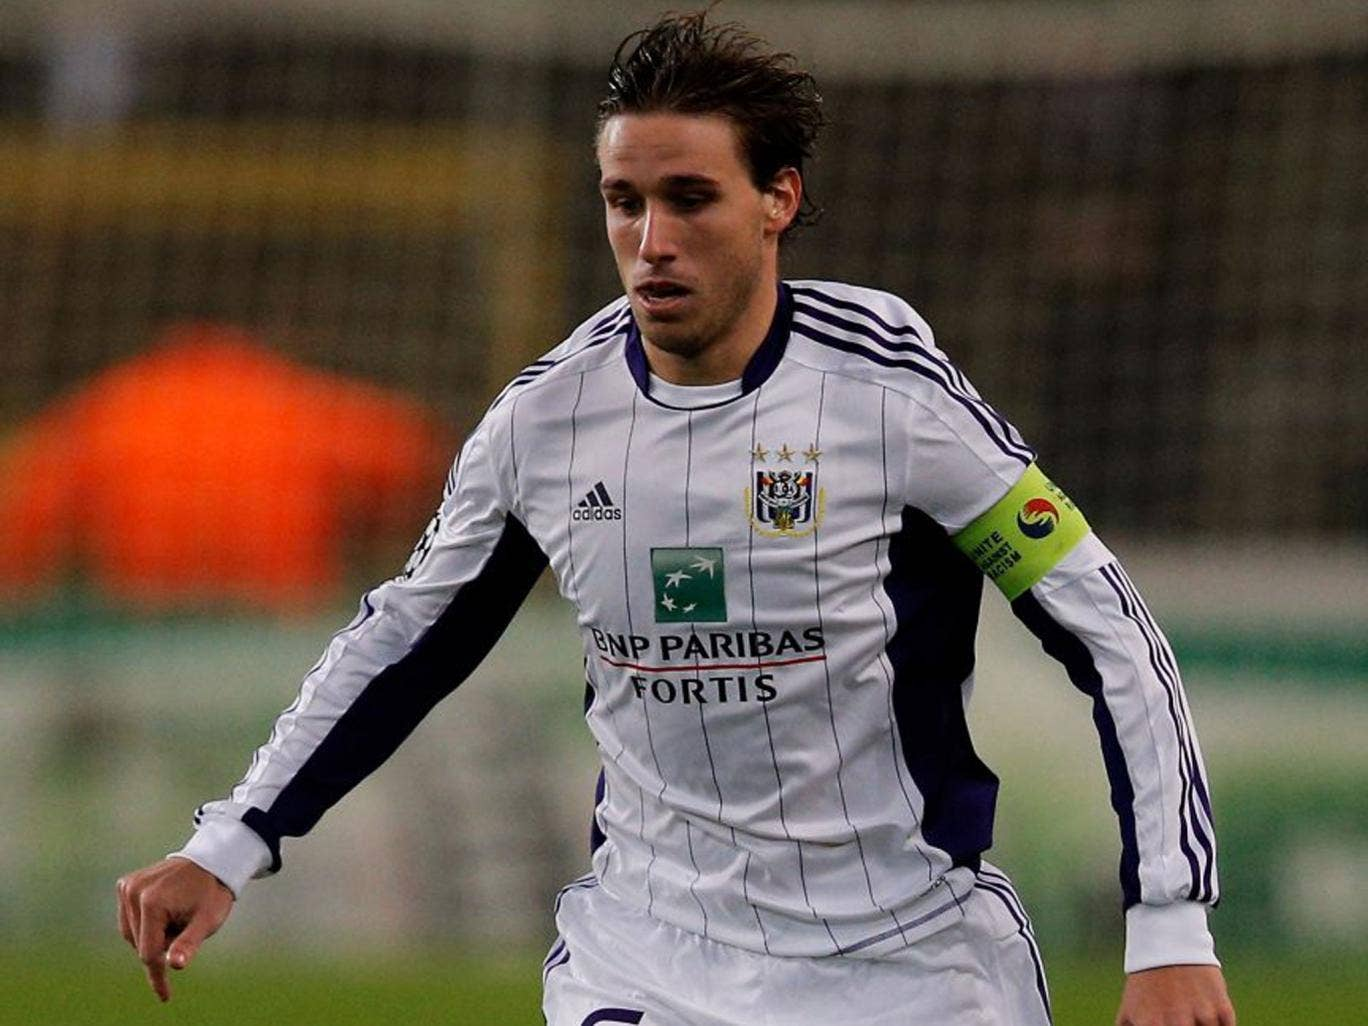 Anderlecht midfielder Lucas Biglia is being watched by Arsenal